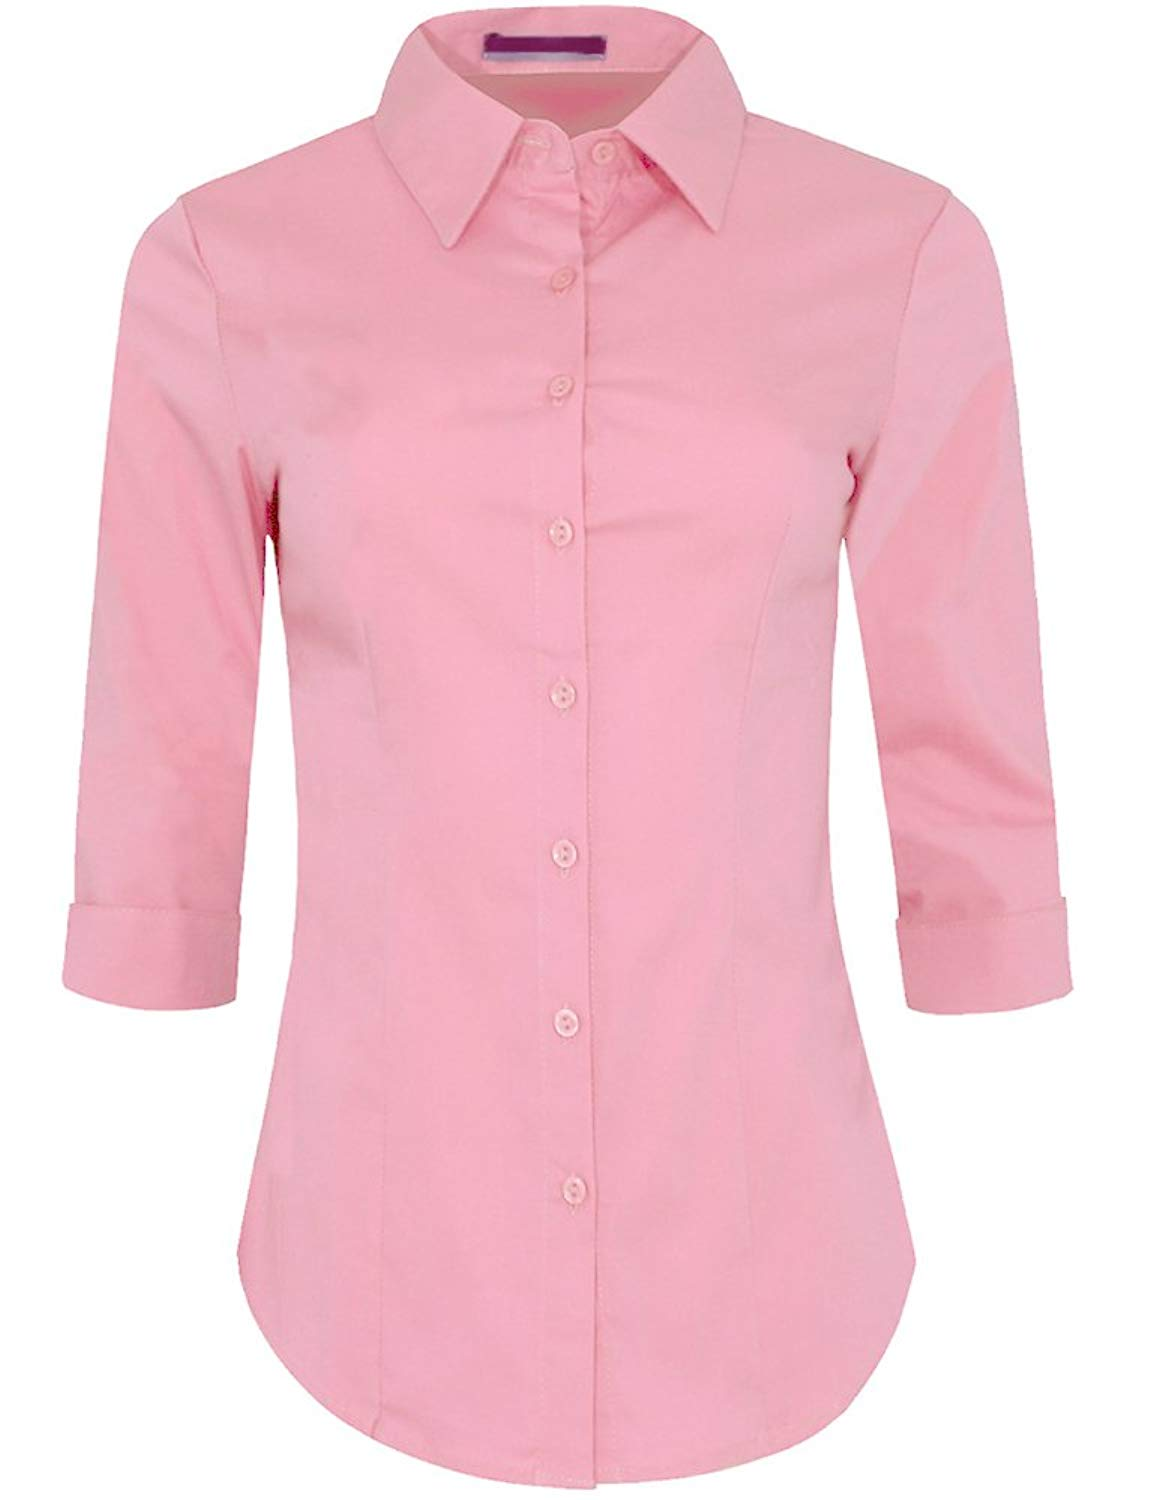 Cheap Collared Shirts Wholesale Find Collared Shirts Wholesale